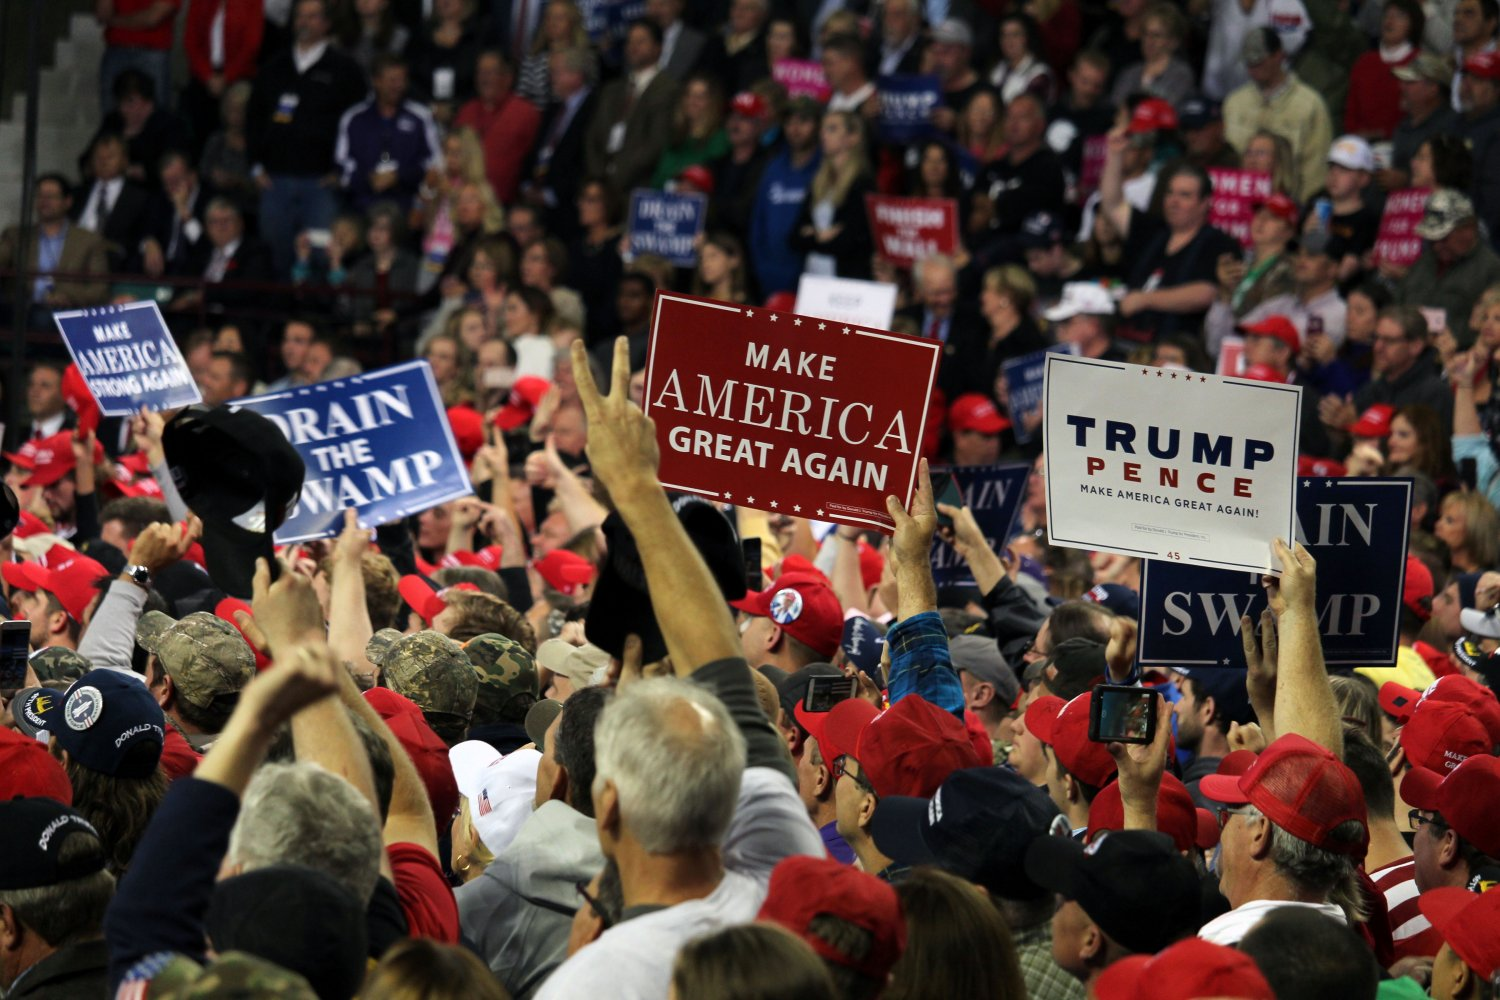 Fans hold up supportive signs with President Donald Trump's slogans. They gathered at the Expo Center in Topeka, Kansas on Oct. 6 to see Trump and fellow politicinas Kris Kobach and Steve Watkins address the crowd.